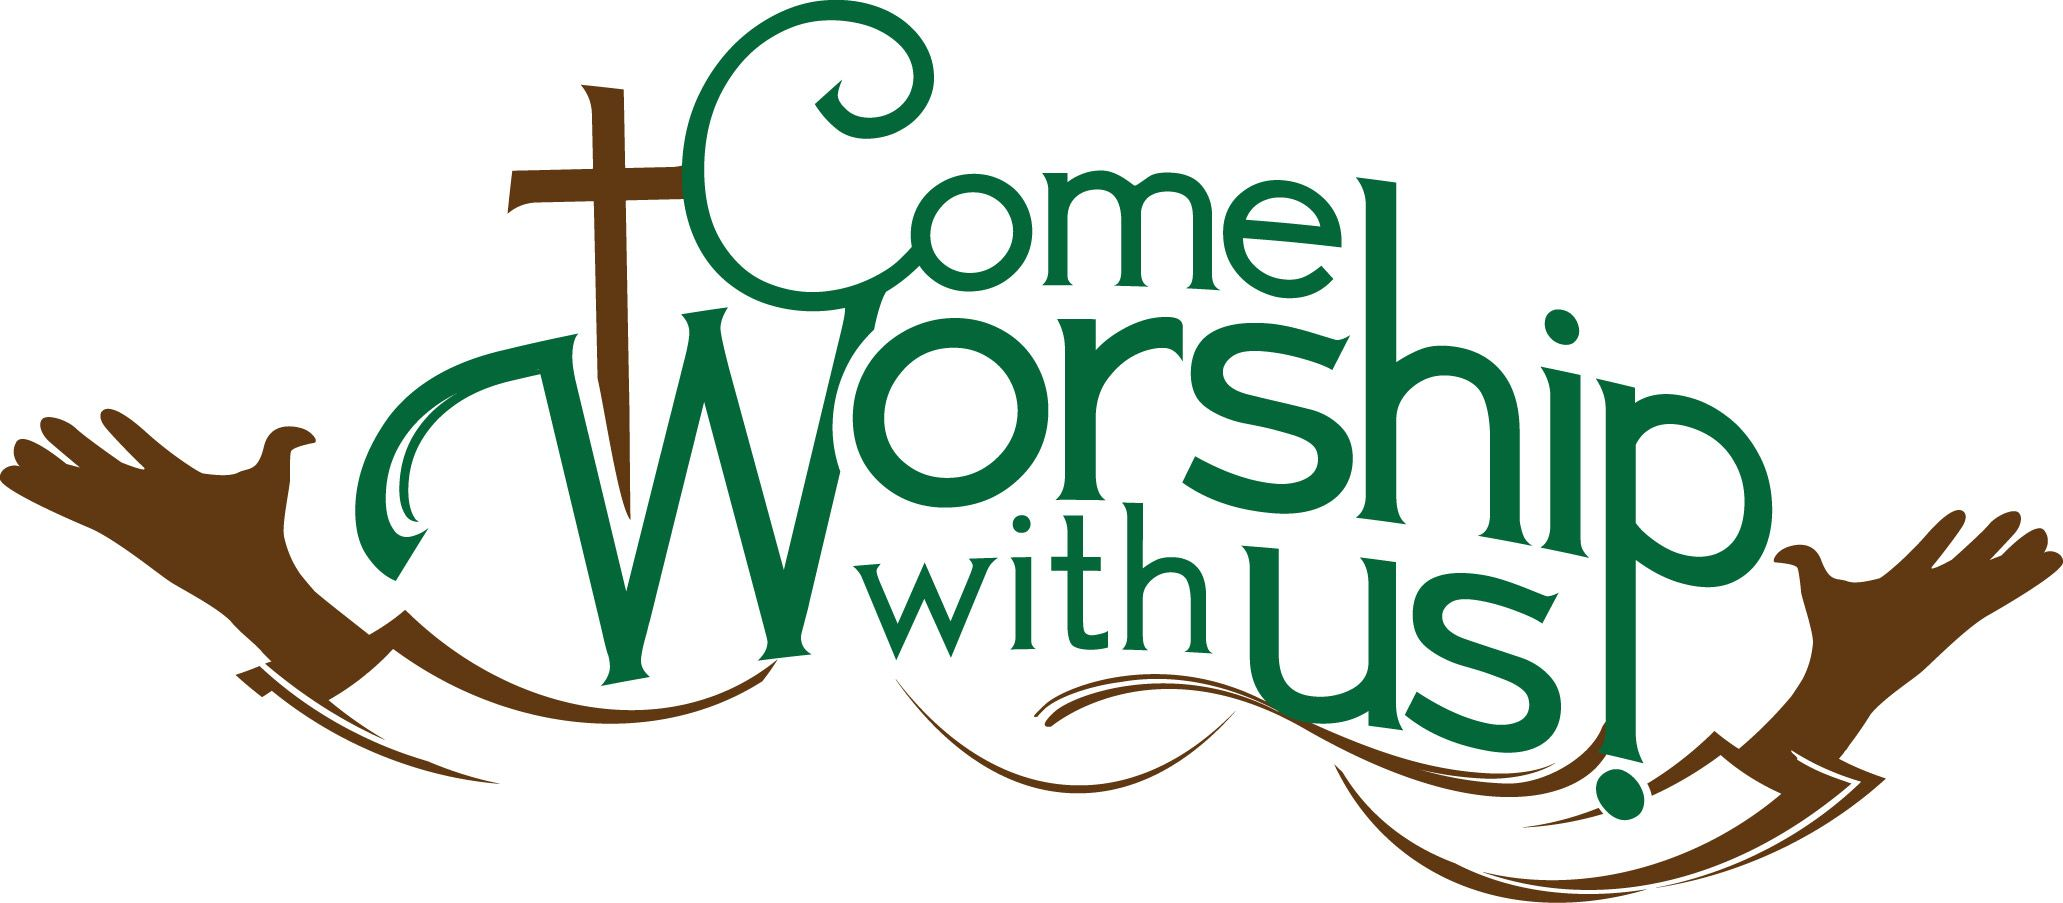 Summer worship clipart image black and white download Each worship service is followed by a Fellowship Hour with the first ... image black and white download